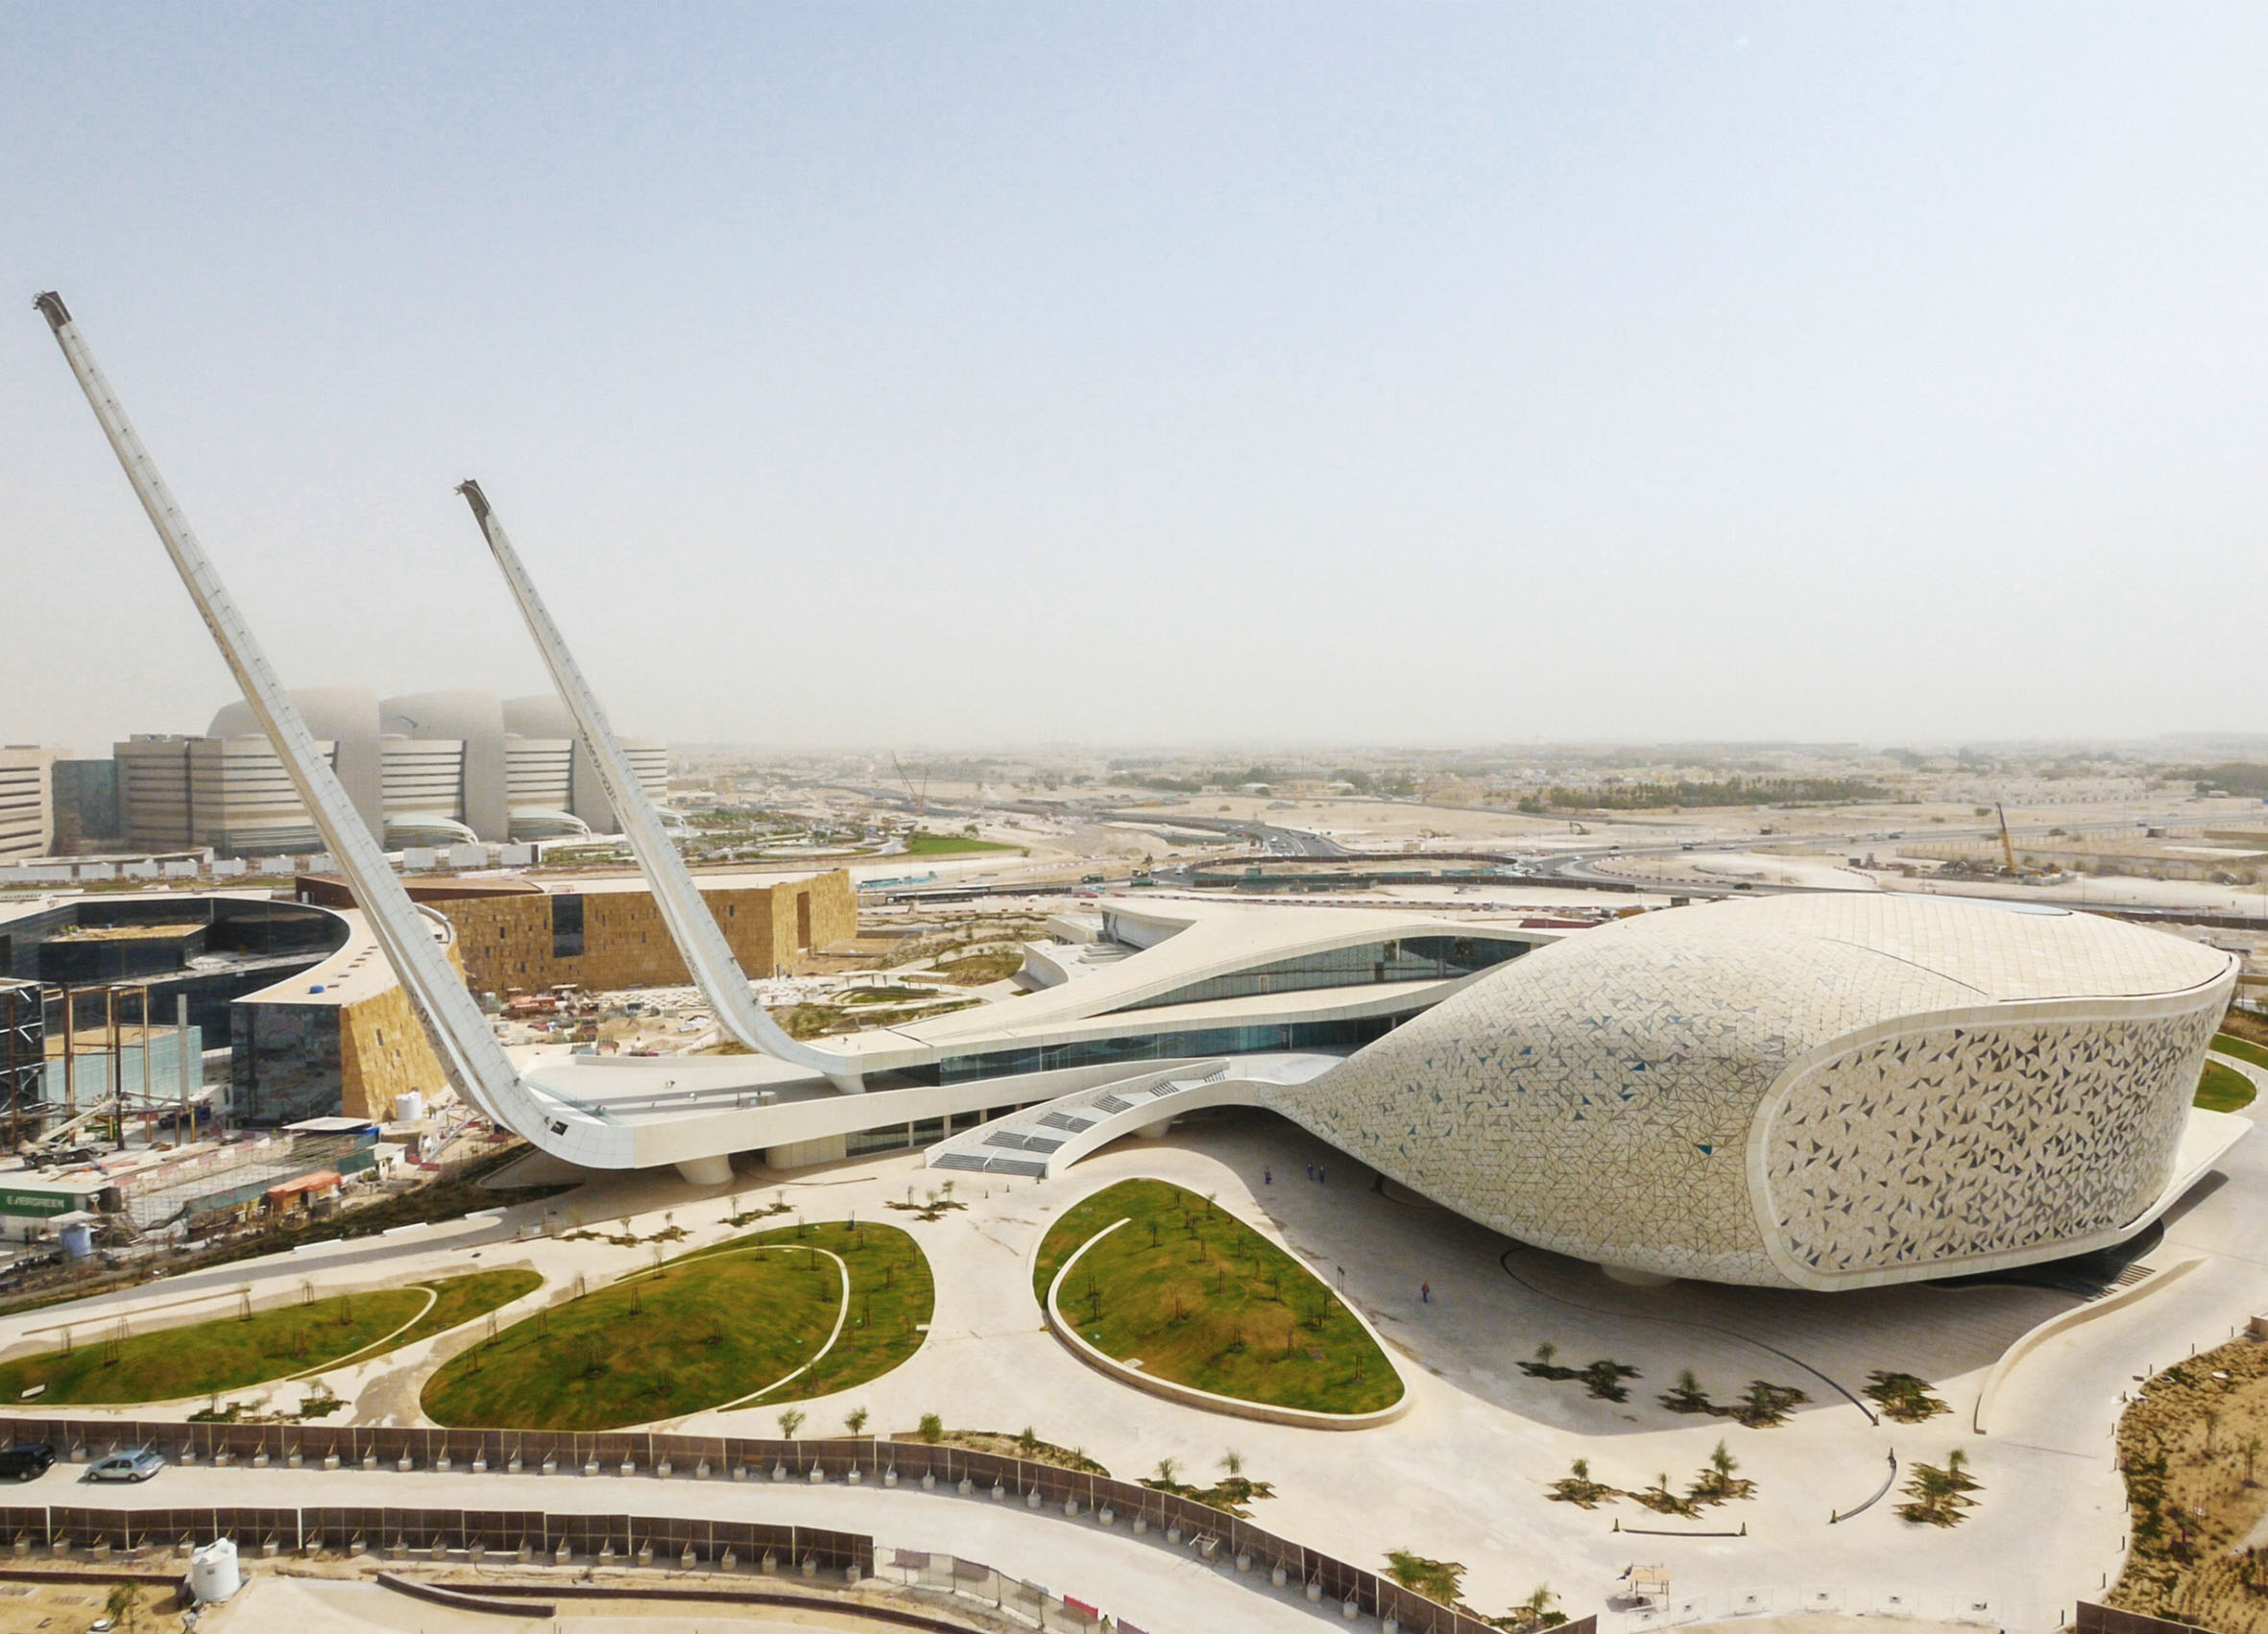 School of Islamic Studies, Qatar -  @ ARUP Building Engineering, Architects MYAA / RHWL